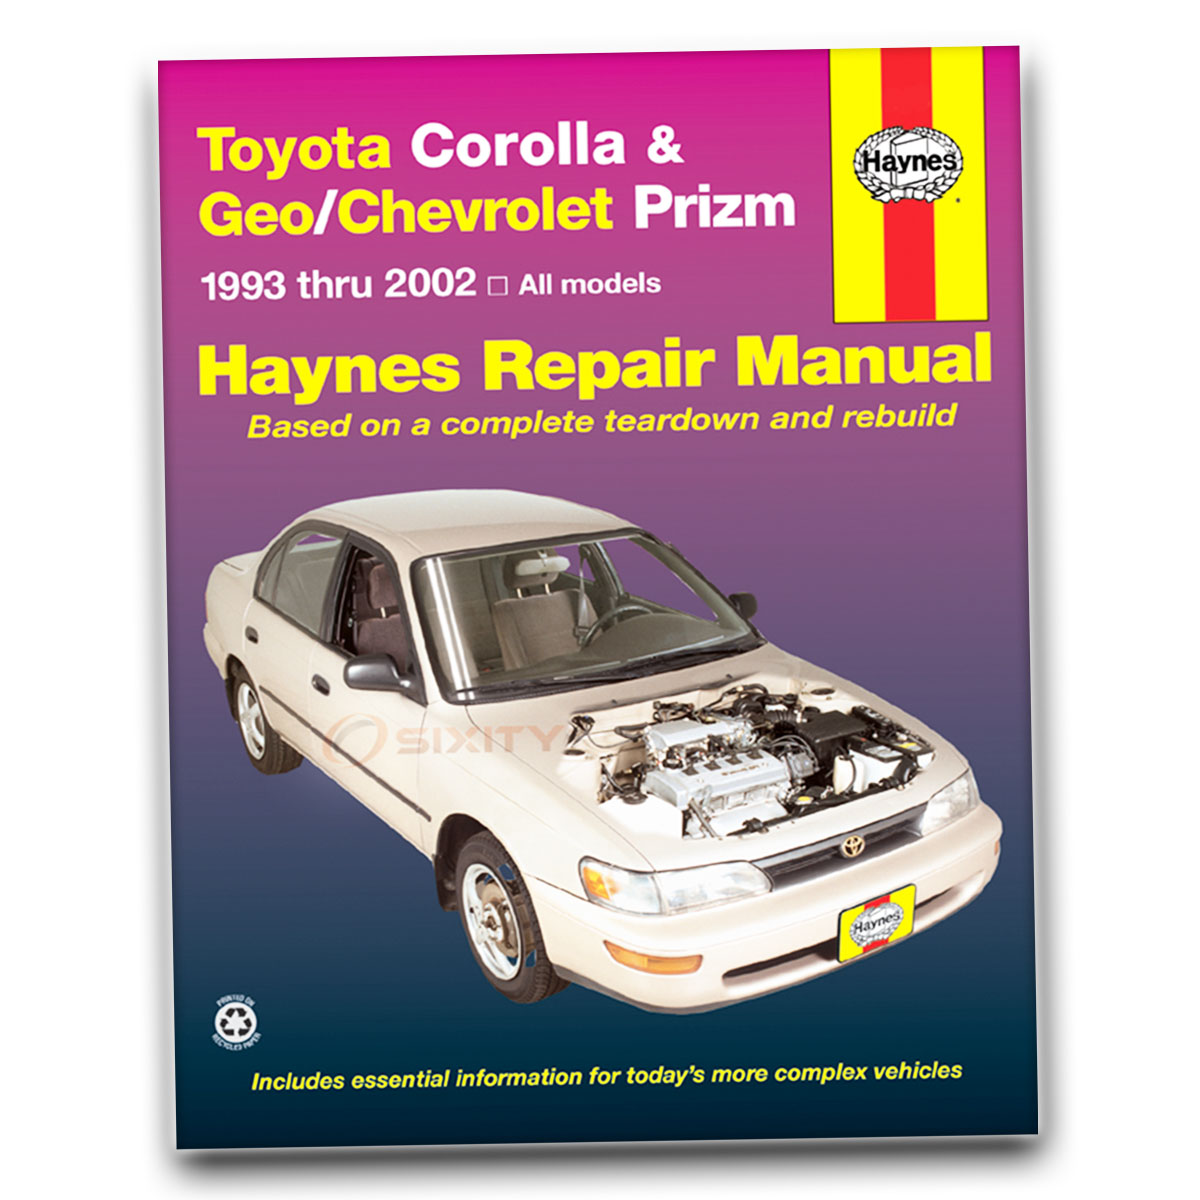 toyota corolla haynes repair manual s ve dx ce base le shop service rh ebay com toyota car repair manual pdf toyota corolla automotive repair manual